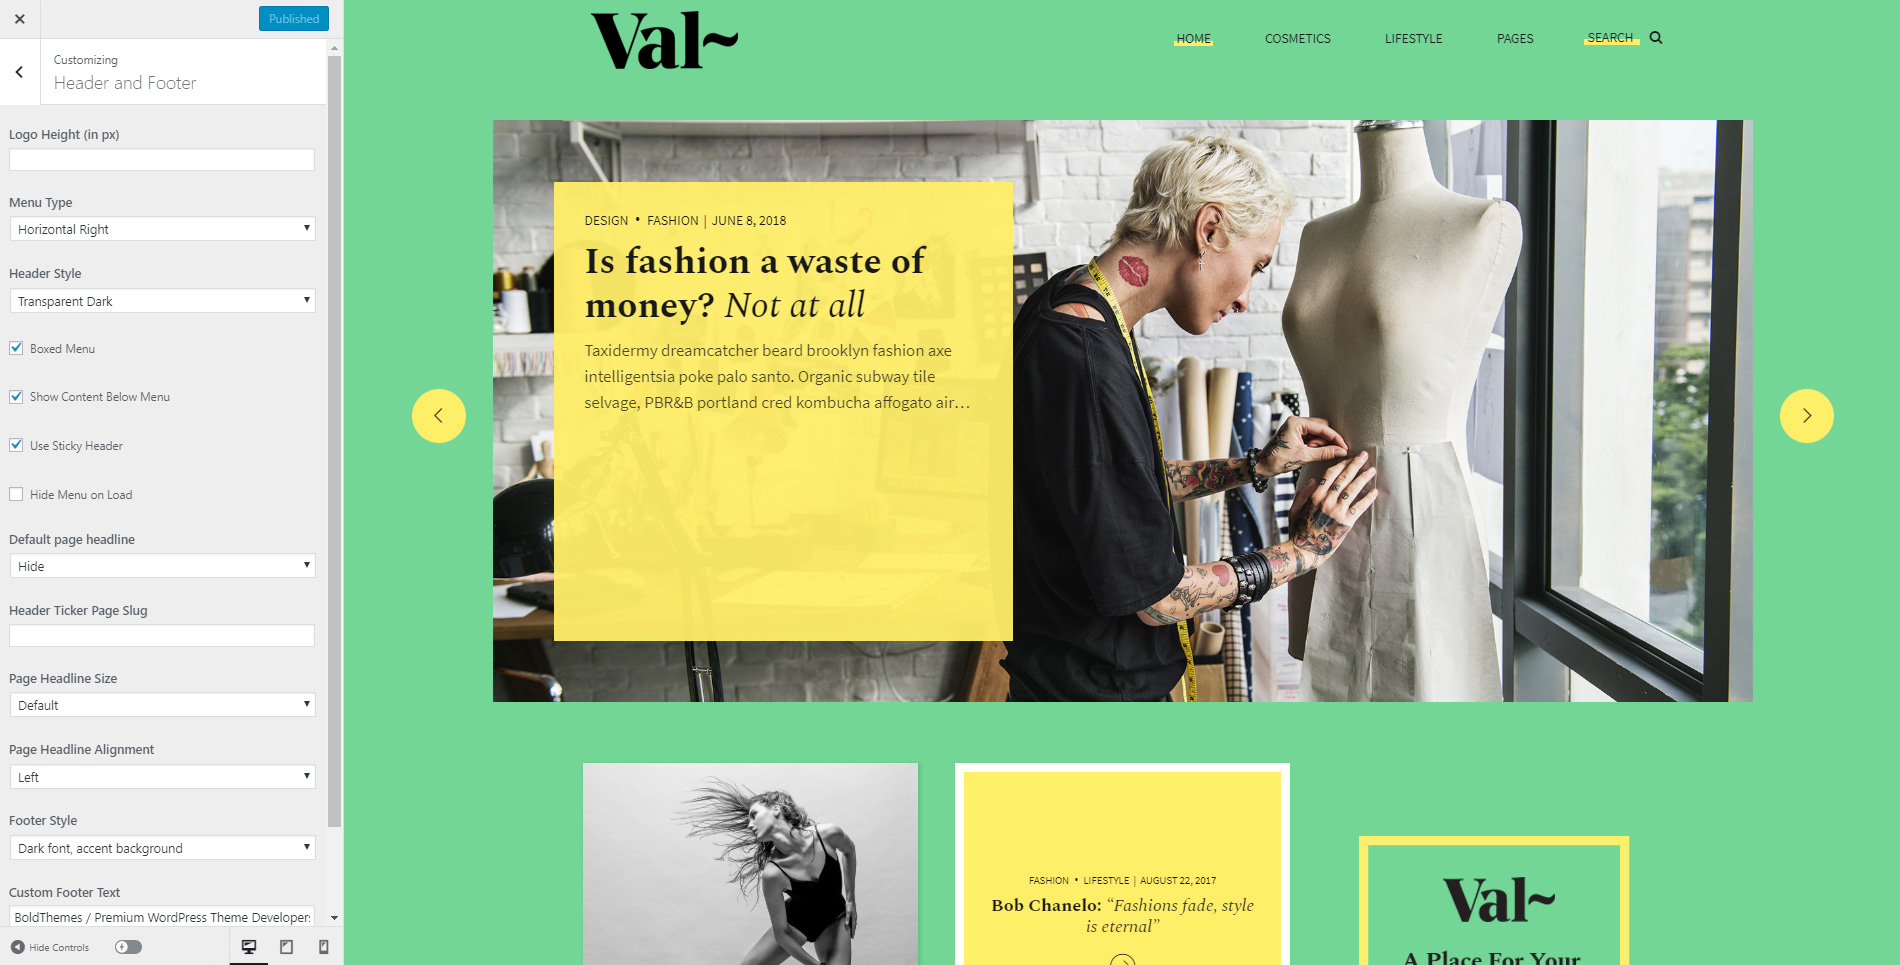 https://documentation.bold-themes.com/val/wp-content/uploads/sites/36/2018/12/val-customize-05.jpg